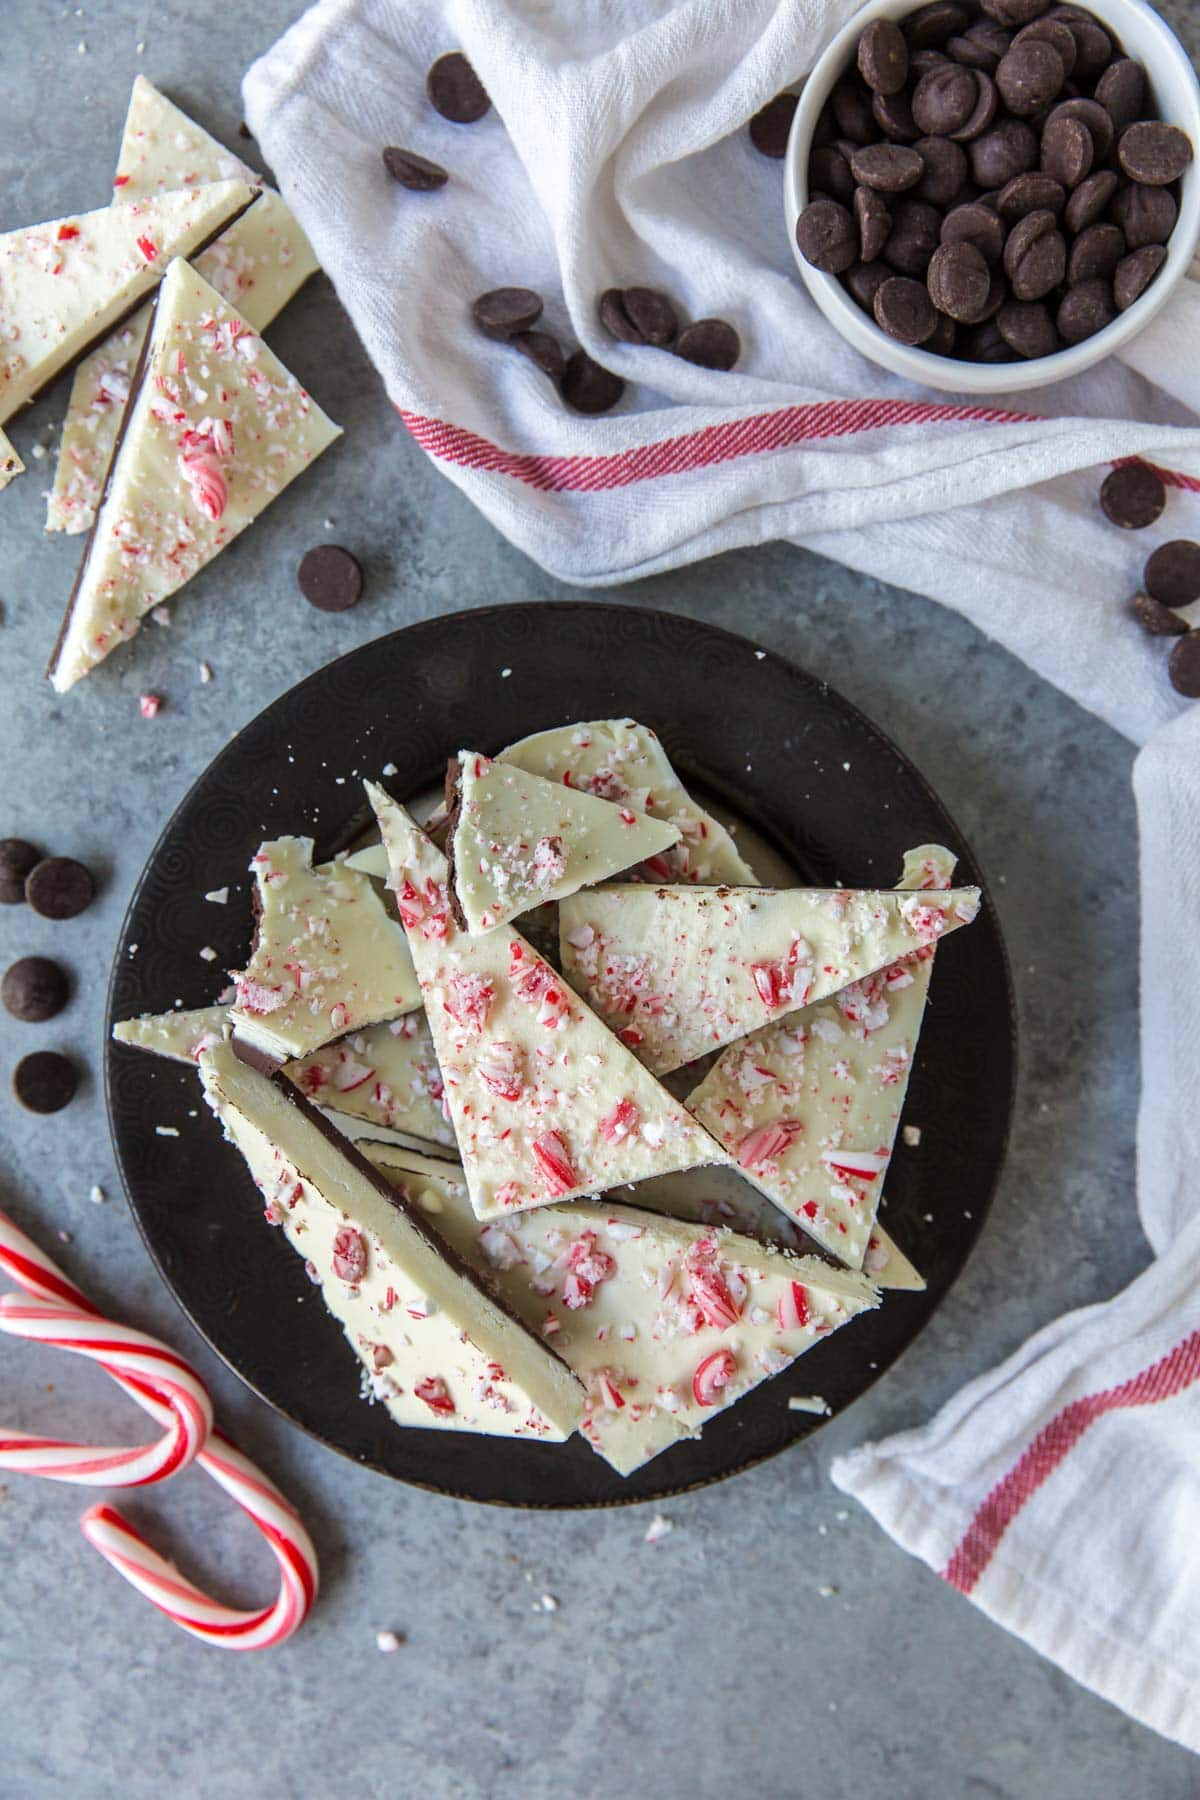 peppermint bark, candy canes, black plate, white towel, chocolate chipe